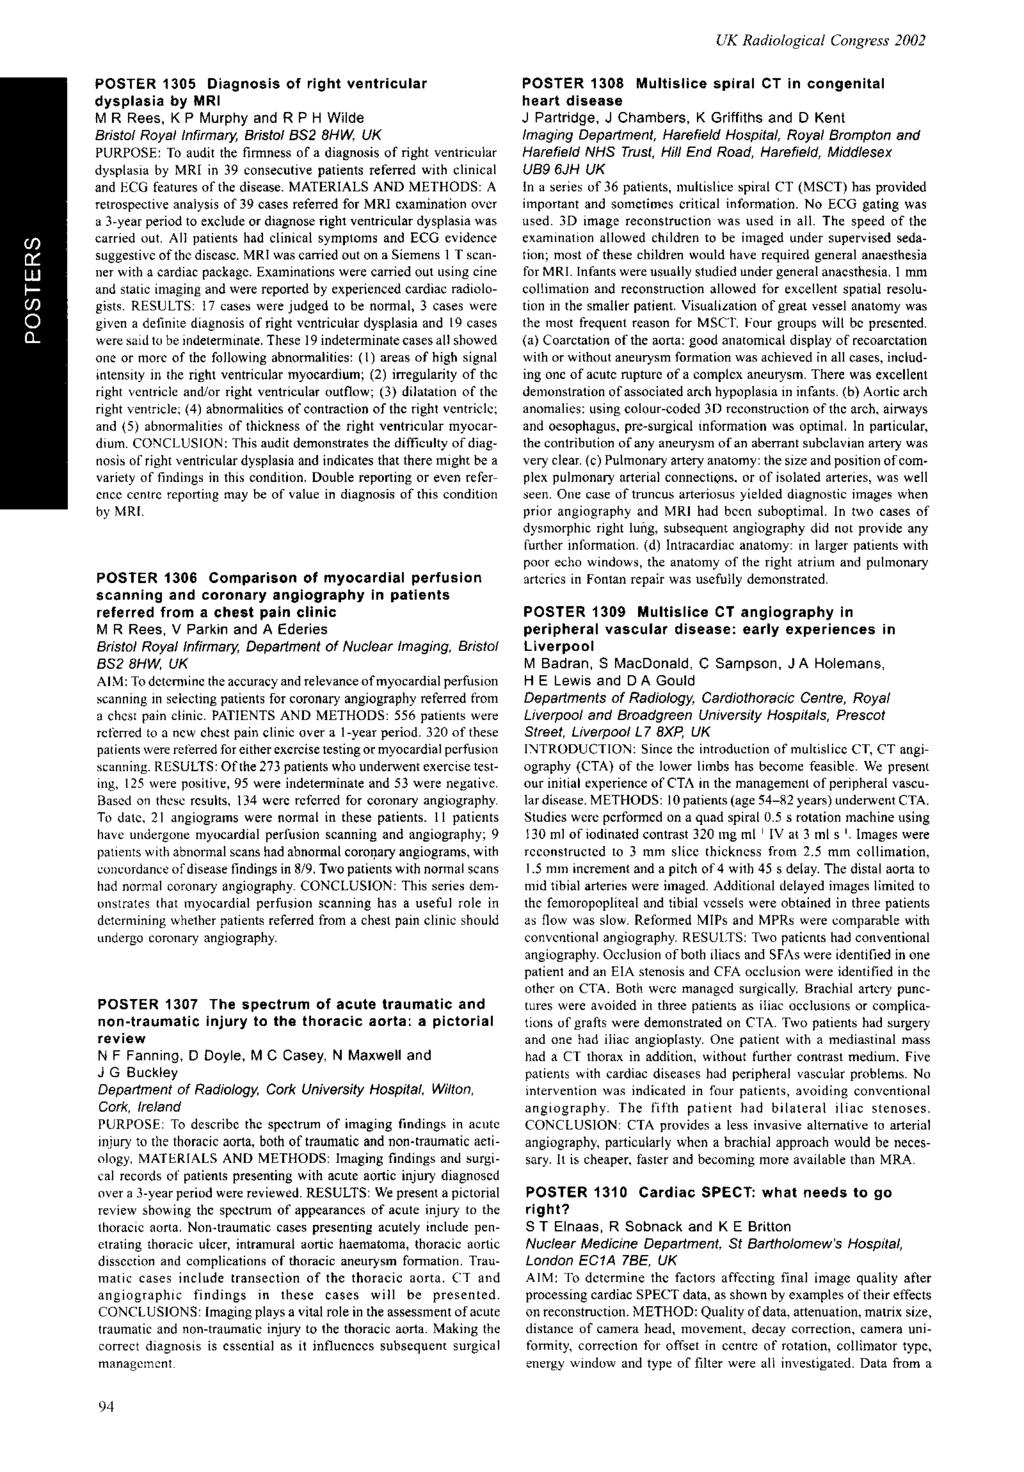 POSTER 305 Diagnosis of right ventricular dysplasia by MRI M R Rees, K P Murphy and R P H Wilde Bristol Royal Infirmary, Bristol BS2 8HW, UK PURPOSE: To audit the firmness of a diagnosis of right